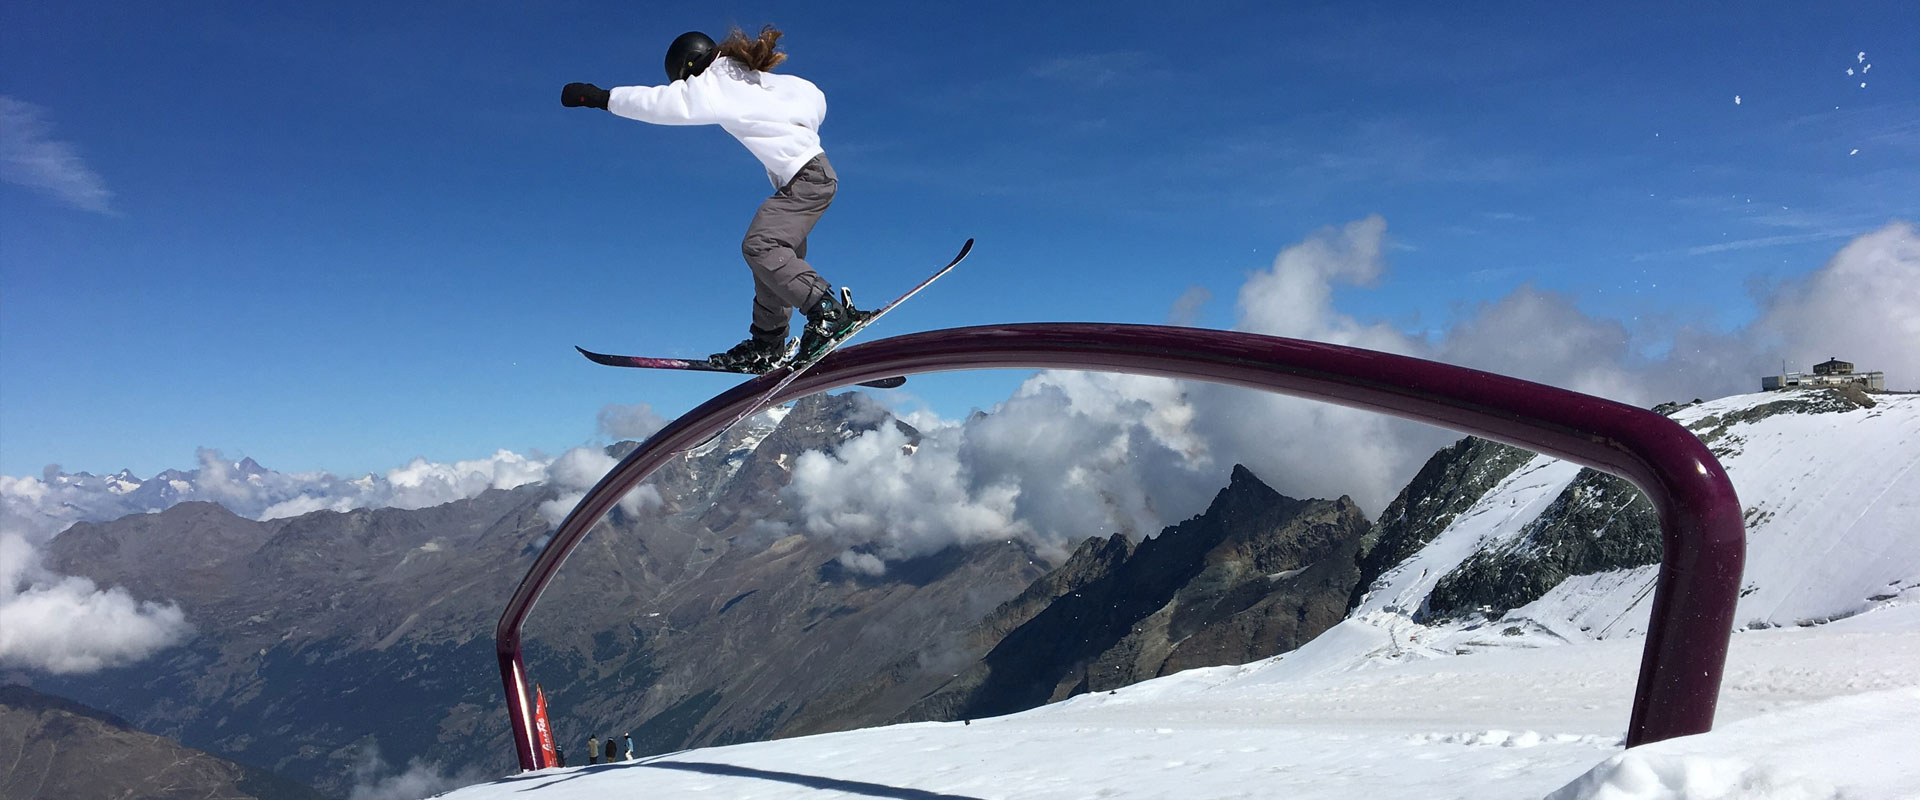 Training in Saas Fee, Switzerland